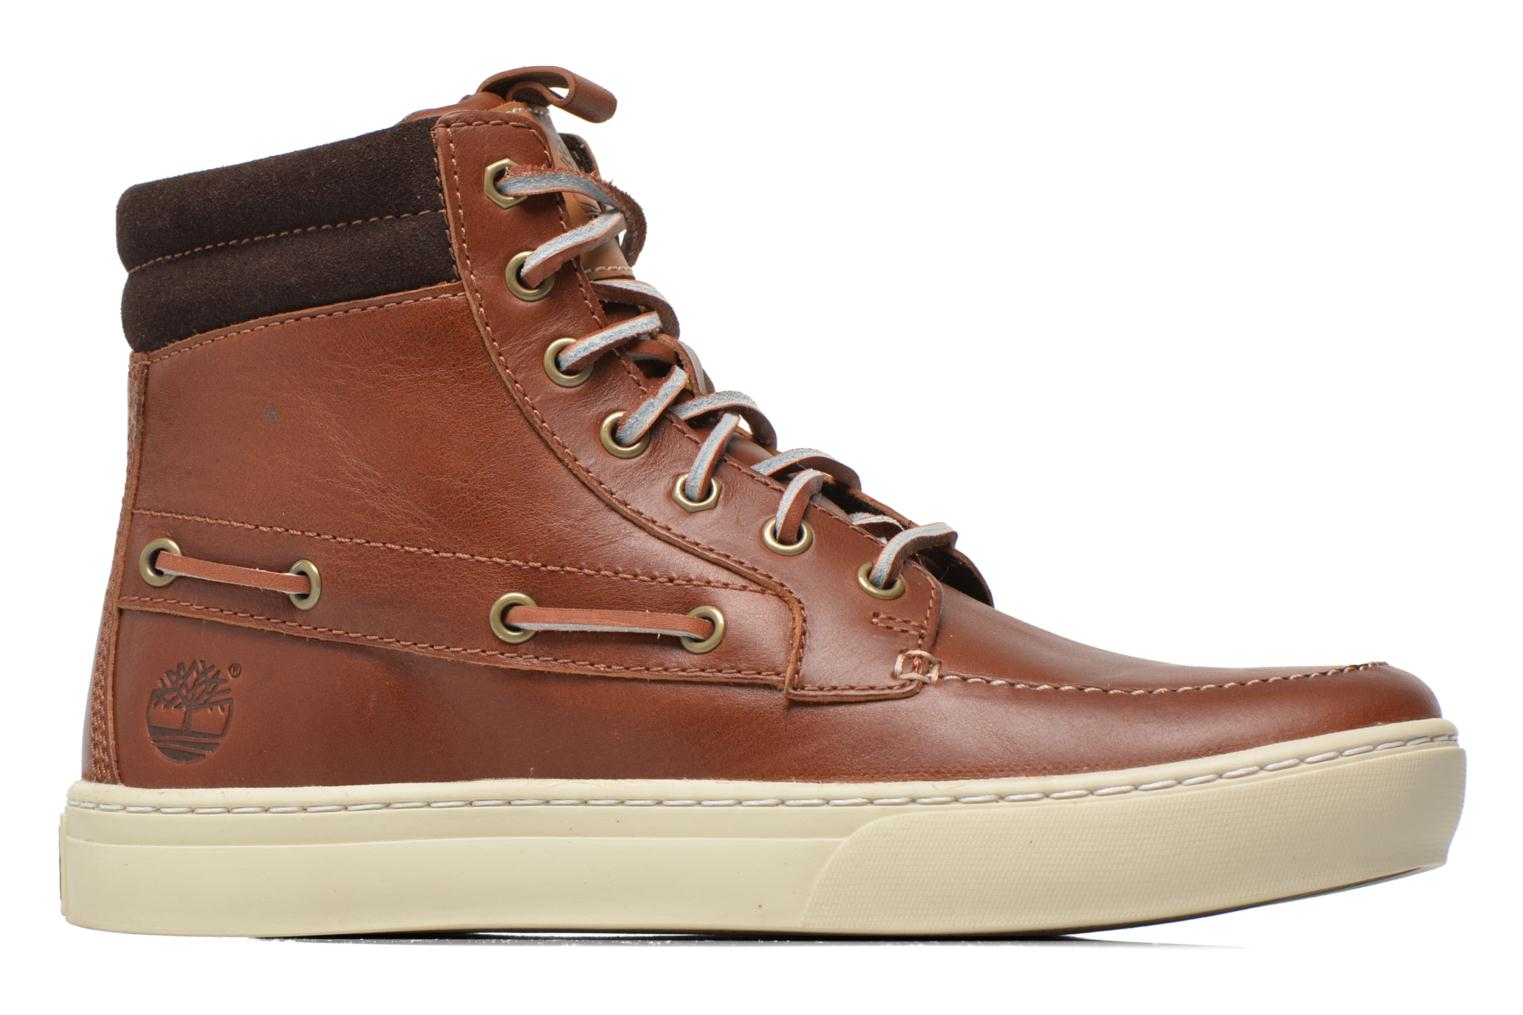 Bottines et boots Timberland Adventure 2.0 Cupsole Leather 7-Eye Chukka Marron vue derrière